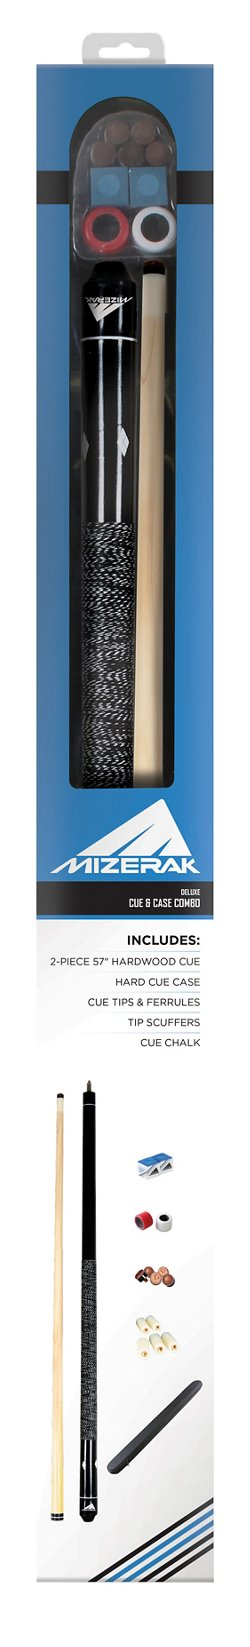 Mizerak™ Deluxe Cue and Case Set